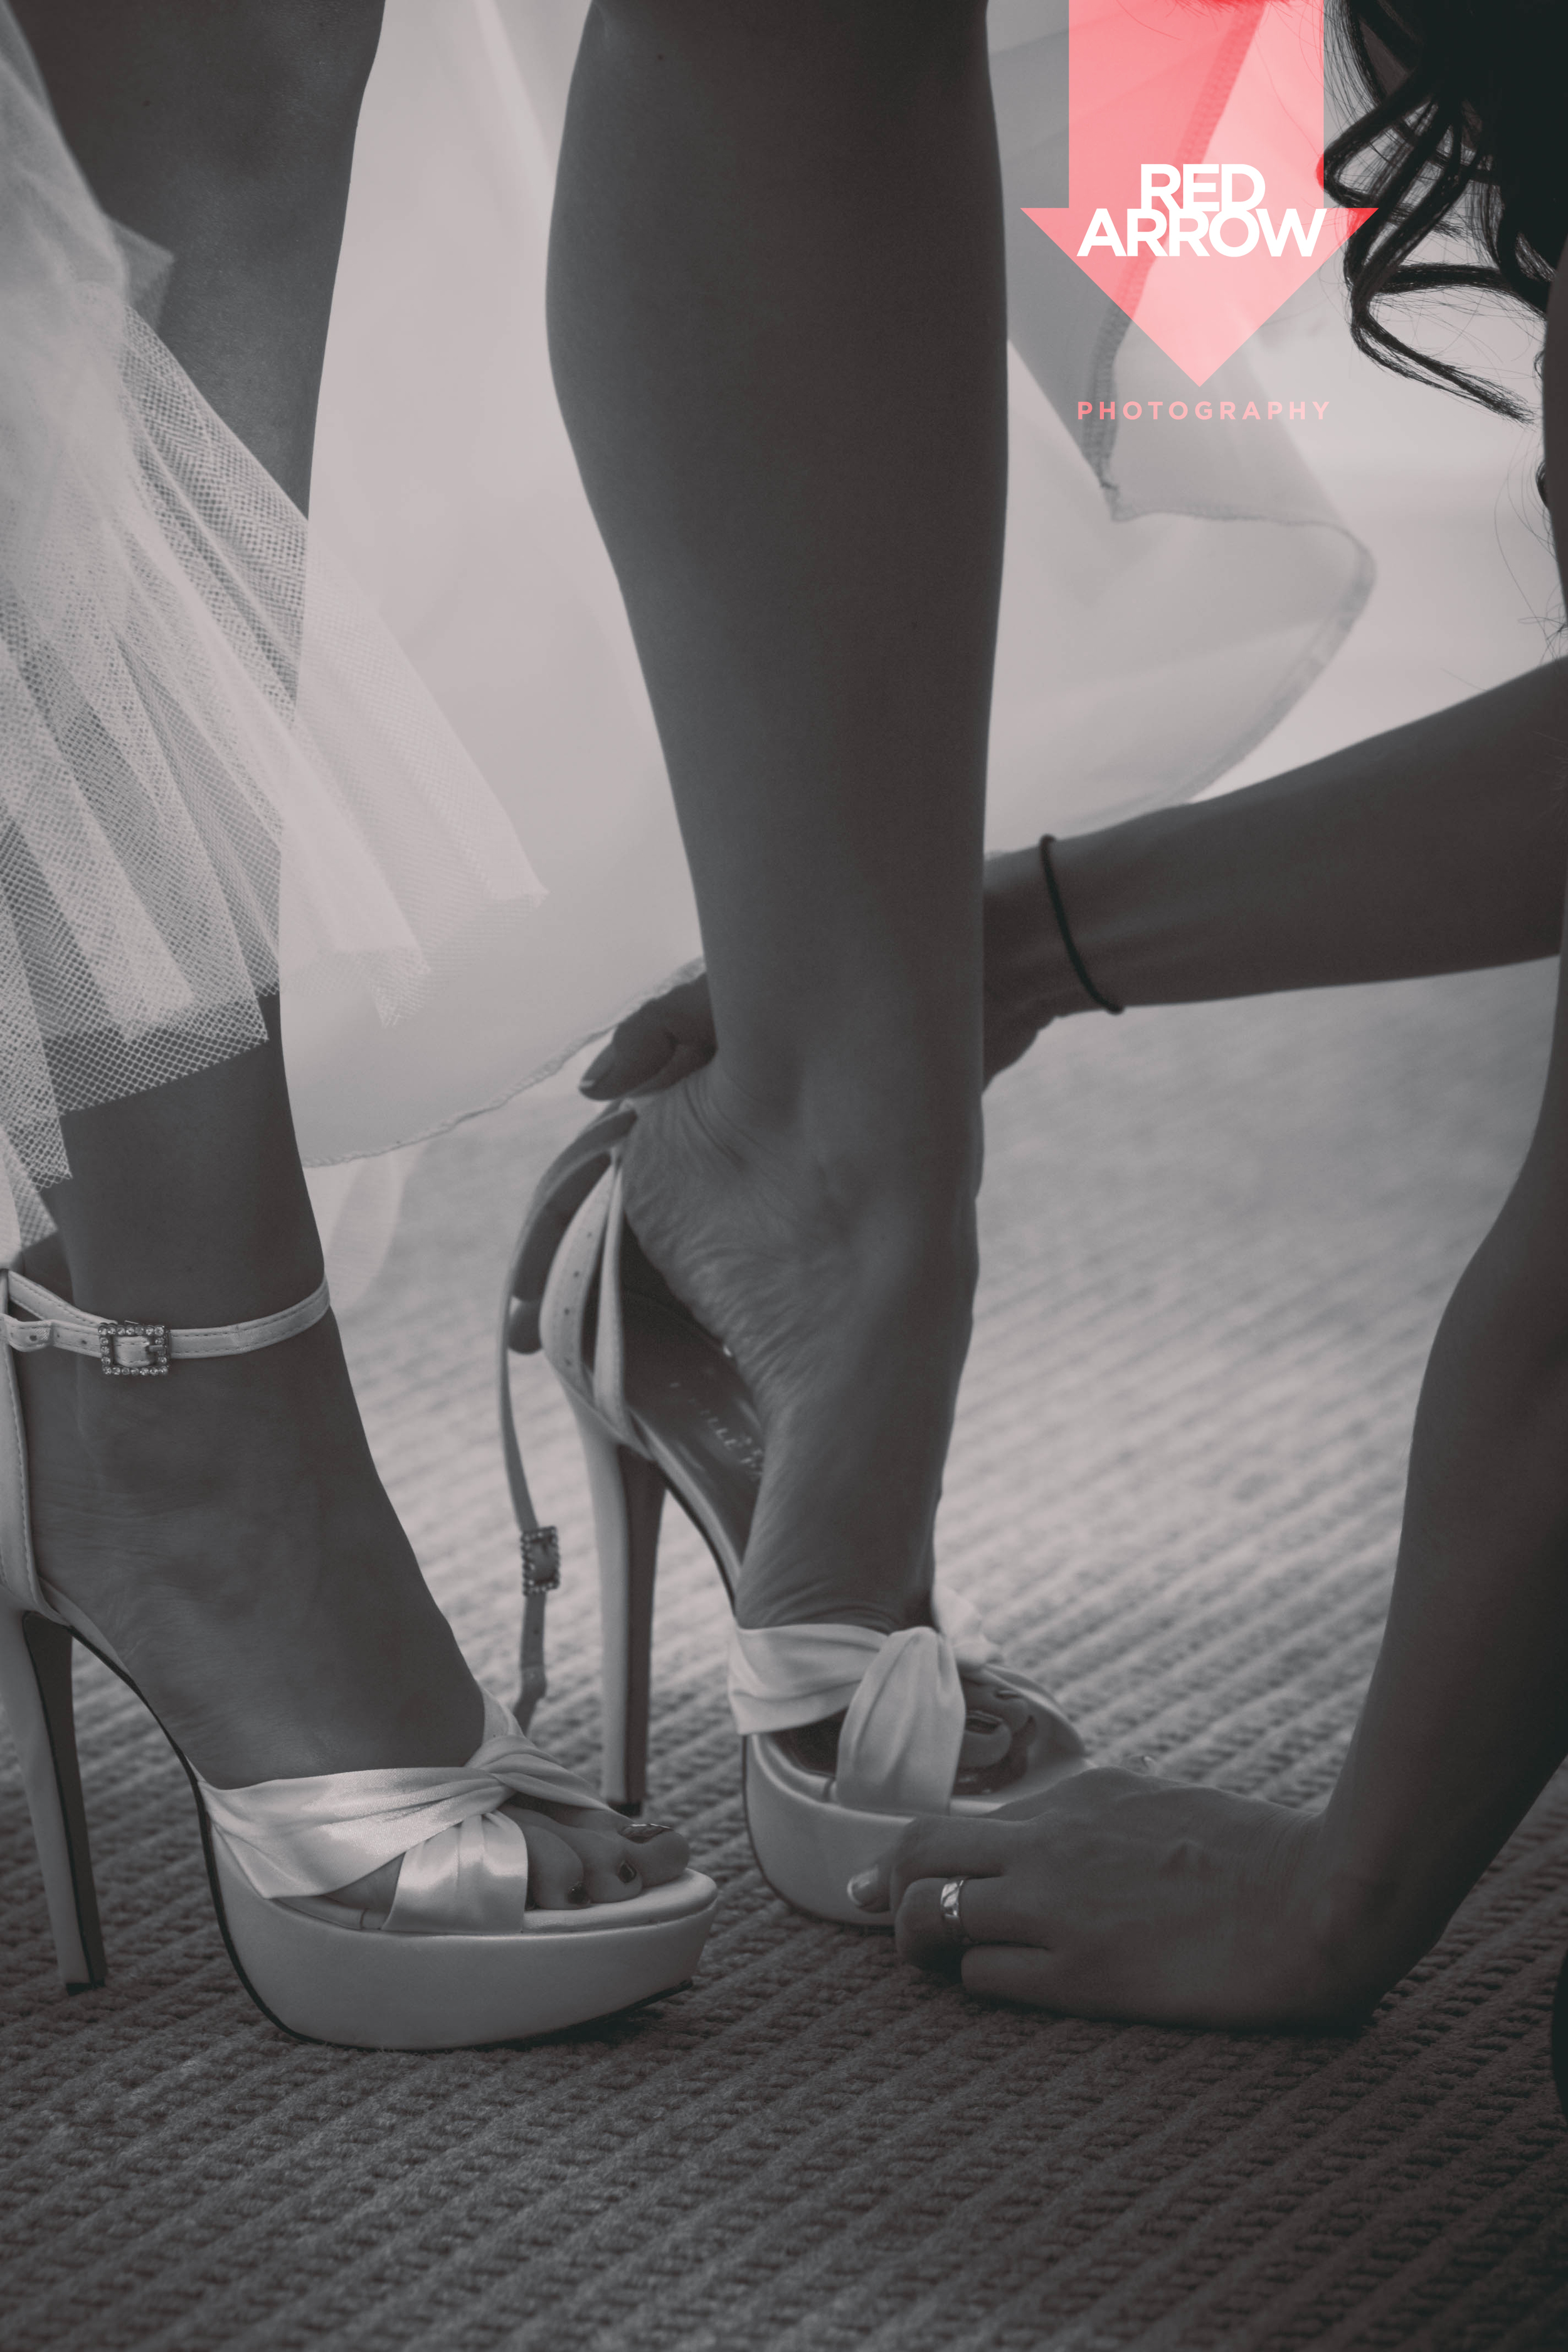 Those are some bridal SHOES.